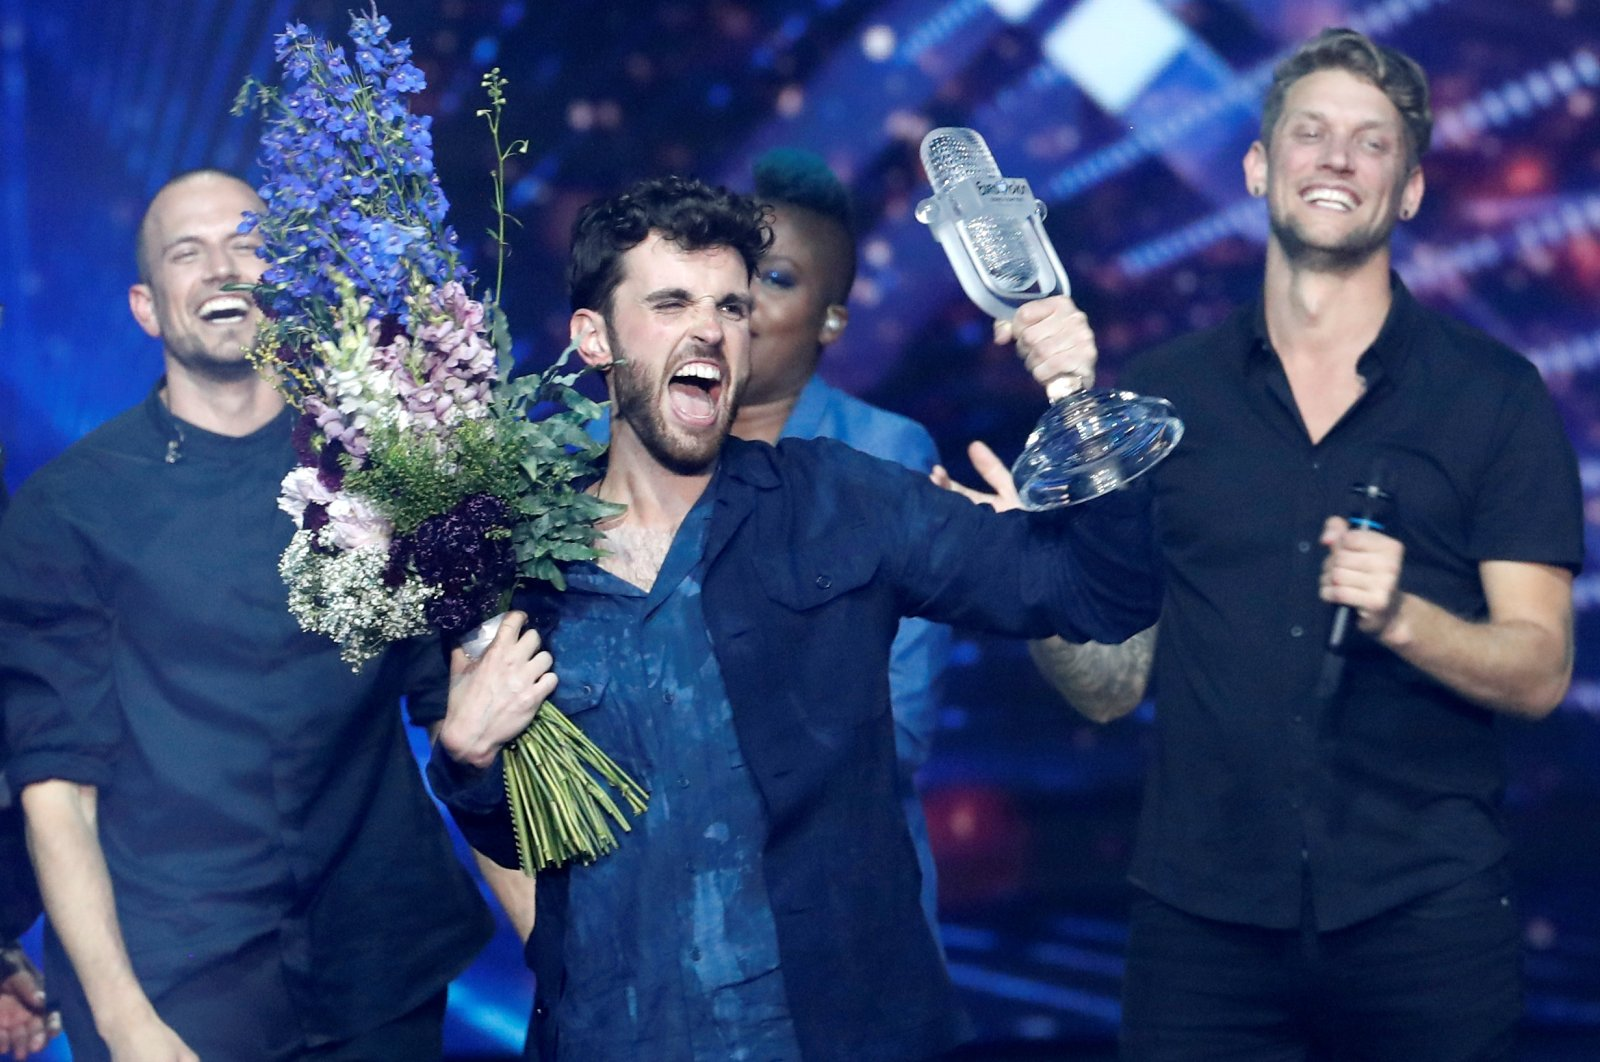 Duncan Laurence of the Netherlands reacts after winning the 2019 Eurovision Song Contest in Tel Aviv, Israel on May 19, 2019. (Reuters Photo)